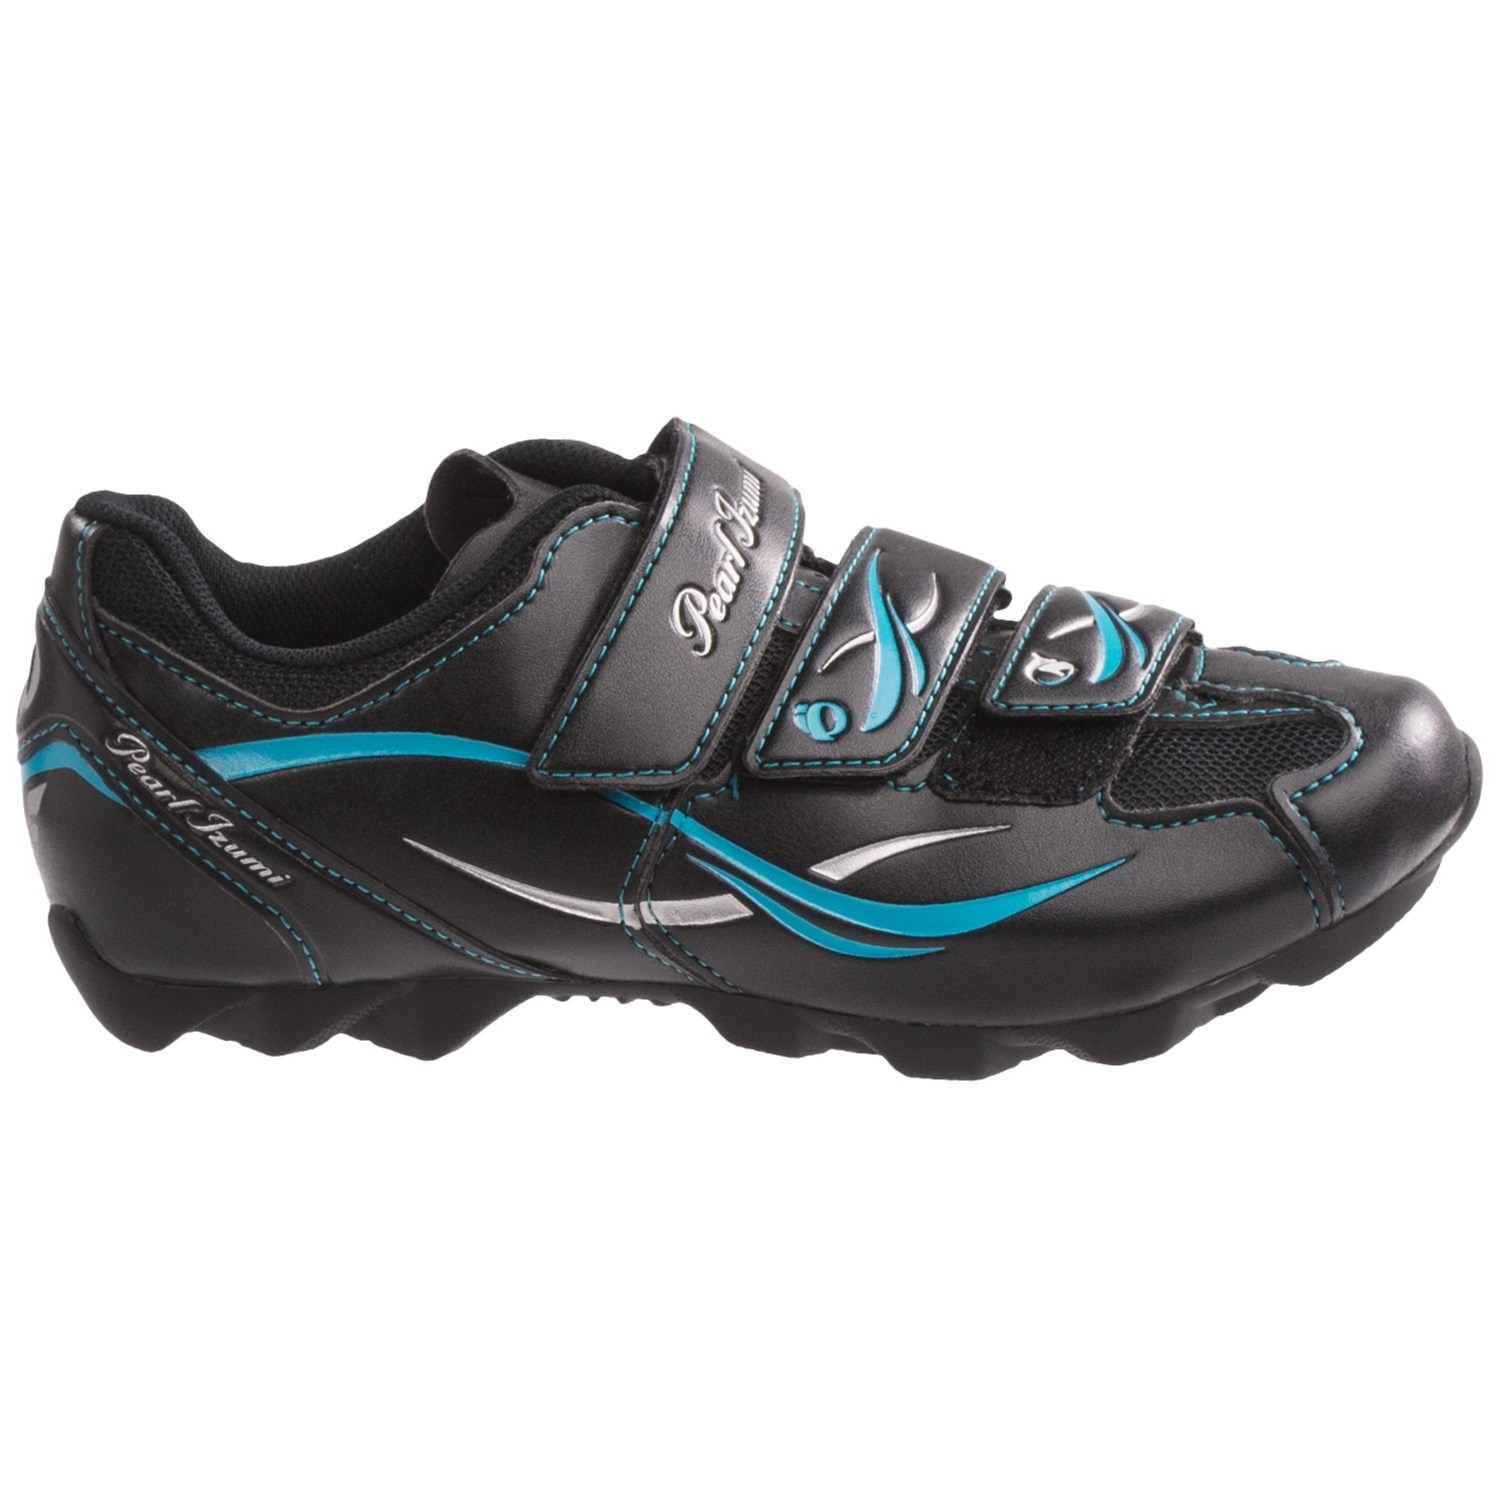 Simple Shimano WM51 Women Specific Cycling Shoes Are SPD Compatible And Designed With Sporting And Recreational Riding In Mind The WM51 Fits The Female Anatomy With A Lower, Narrower Heel And Lower Volume Toe AreaWalking Comfort Is